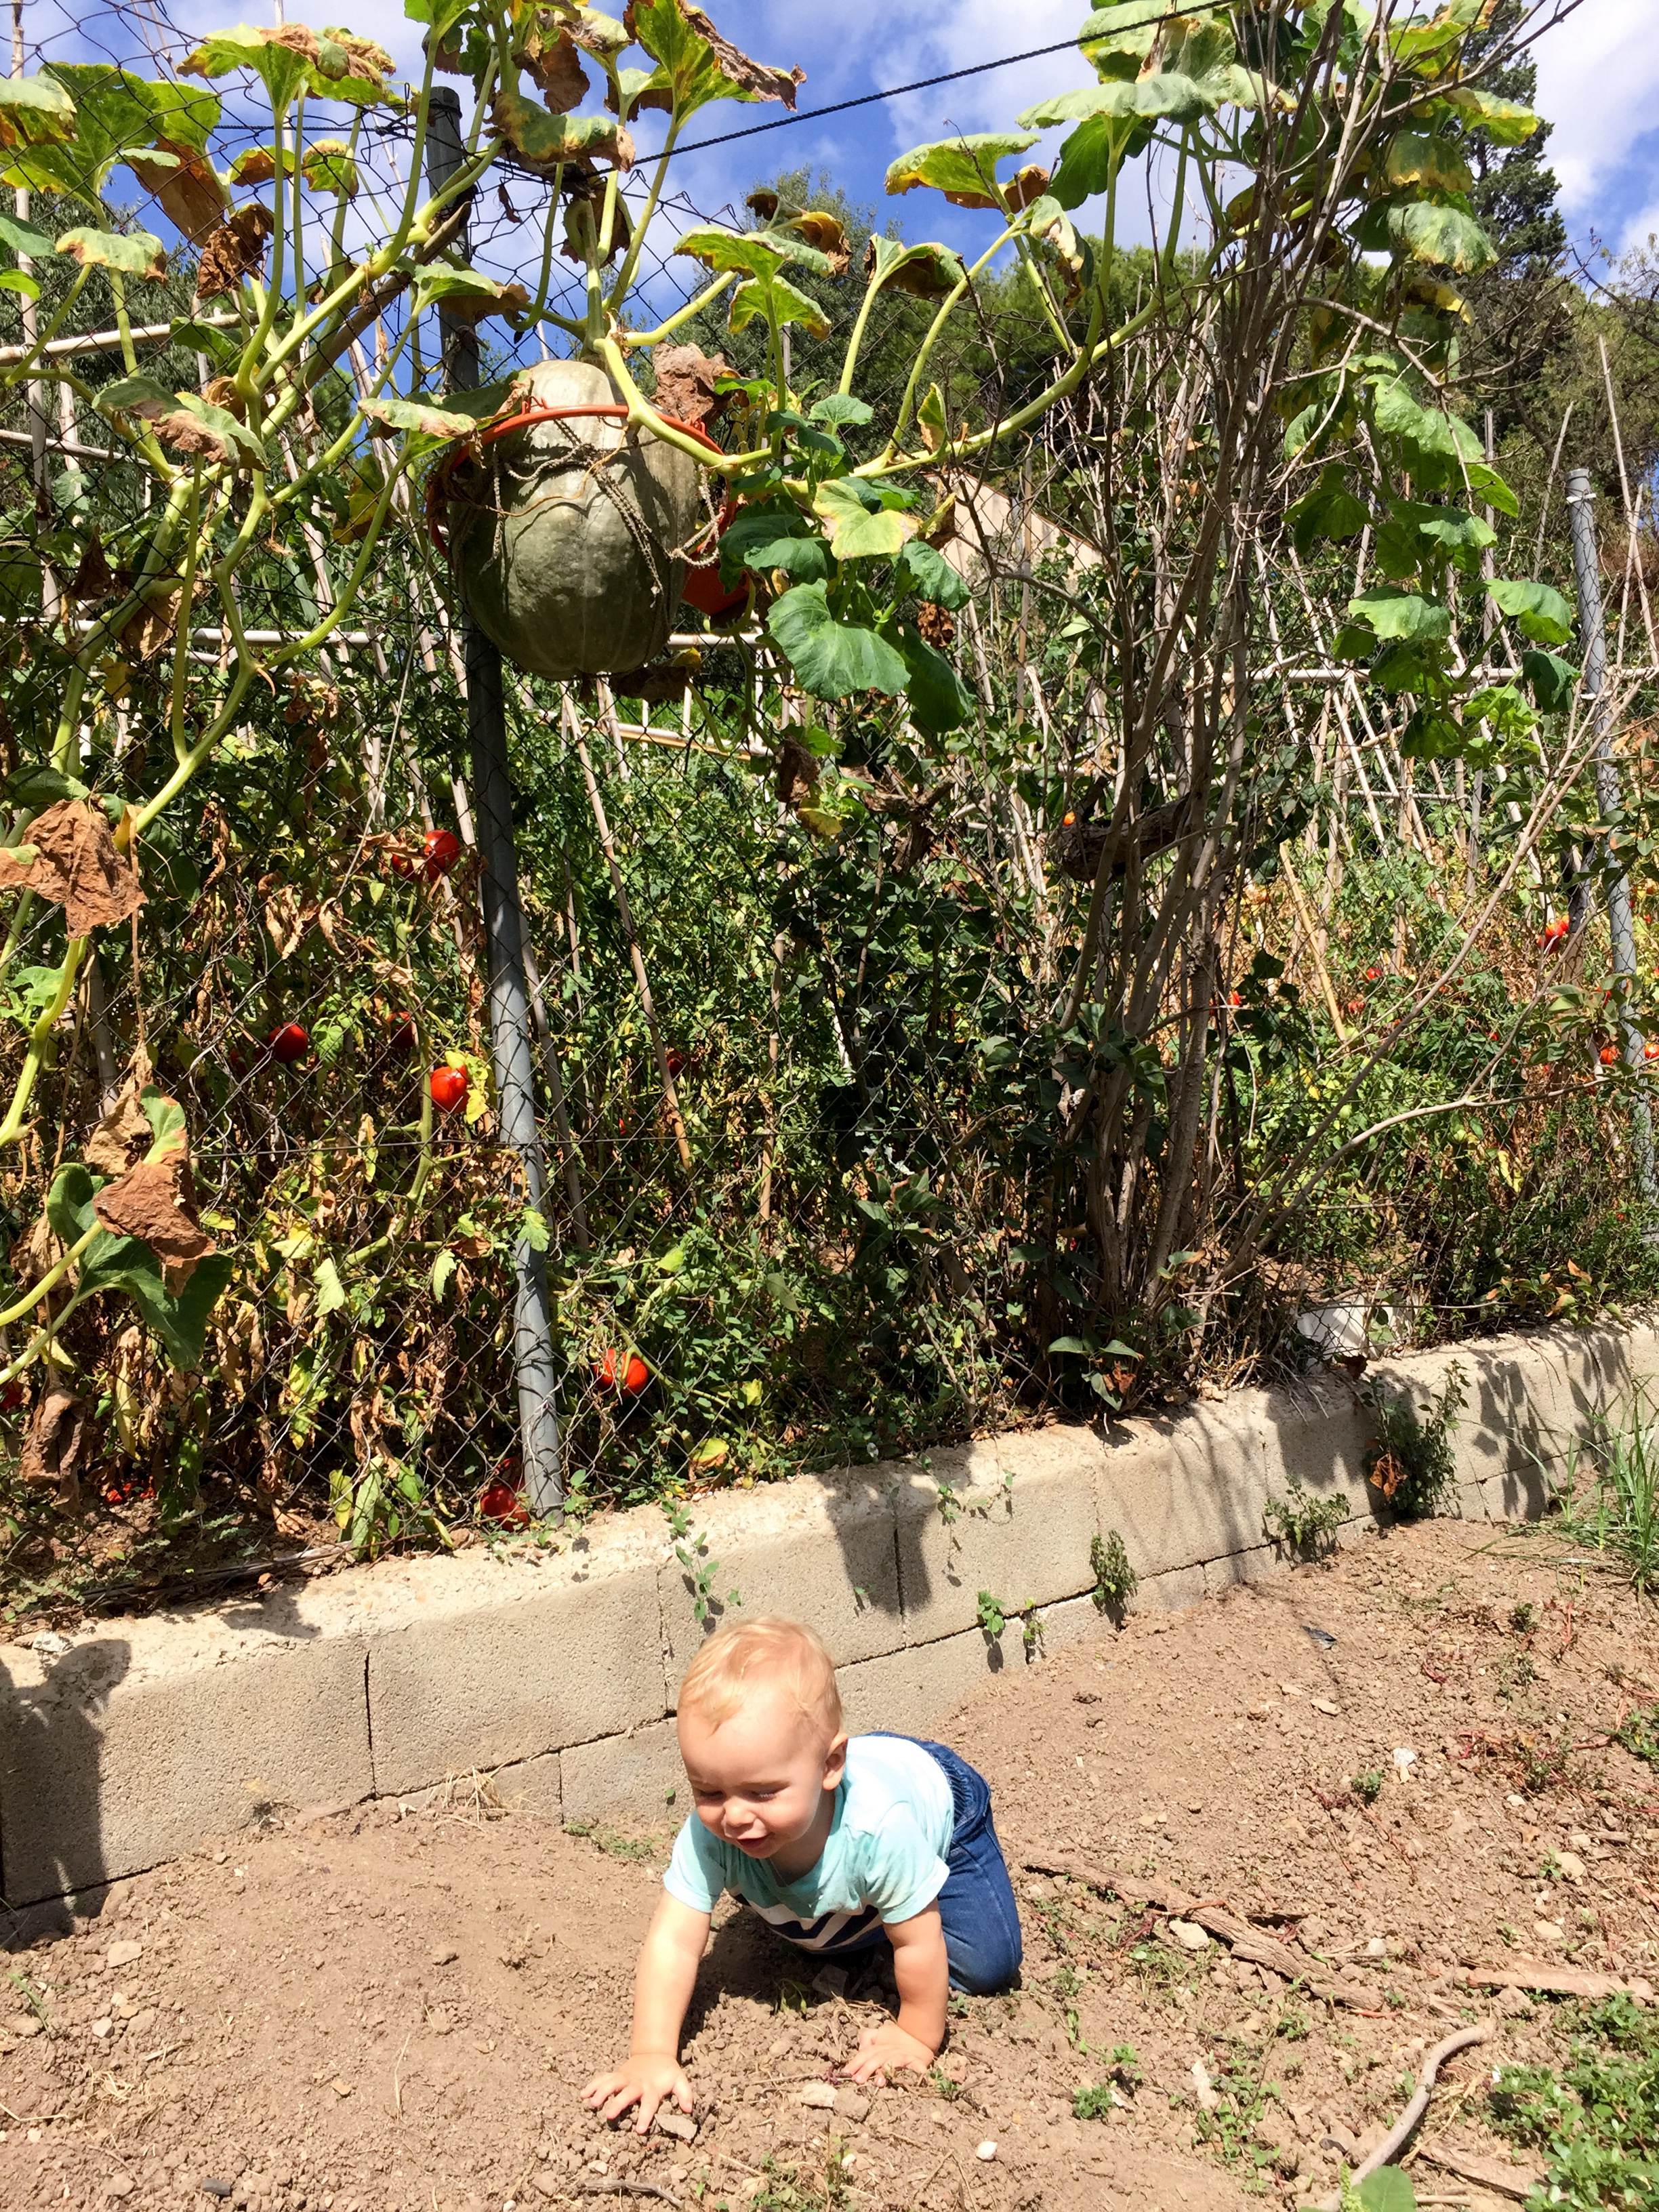 Life moves forward: Asher takes a stroll through our church's vegetable garden. And, yes, that's a watermelon growing in a basketball hoop.